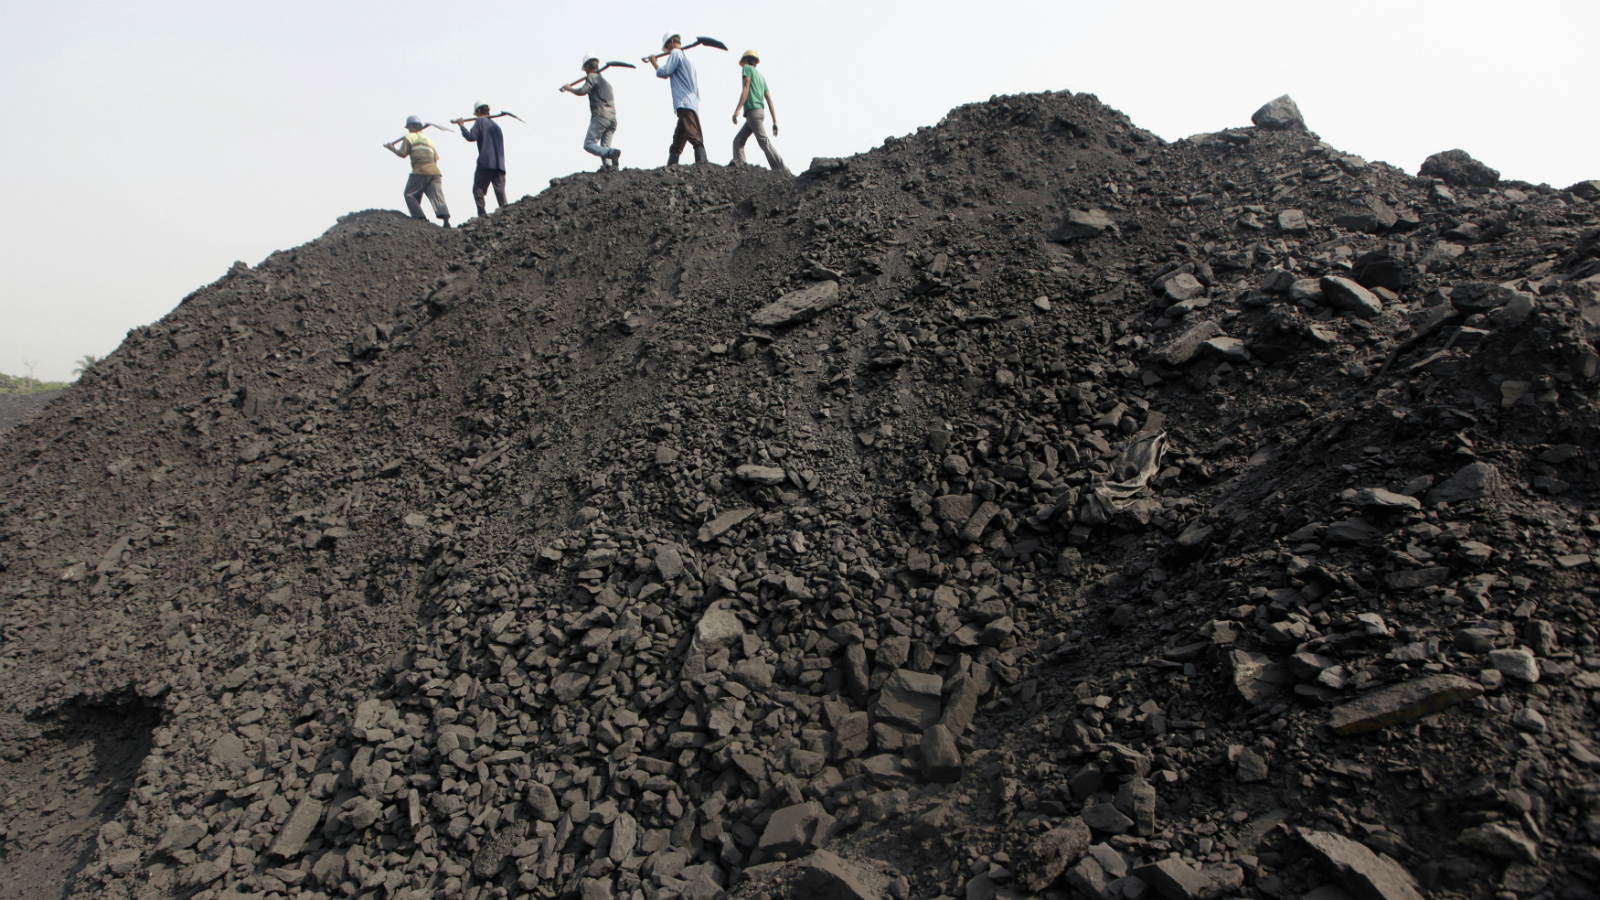 Workers walk on a heap of coal at a stockyard of an underground coal mine in the Mahanadi coal fields at Dera, near Talcher town in the eastern Indian state of Orissa March 28, 2012. India sits on the world's fifth-largest coal reserves, and produces the most after China and the United States. Picture taken March 28, 2012. To match INDIA-COAL/